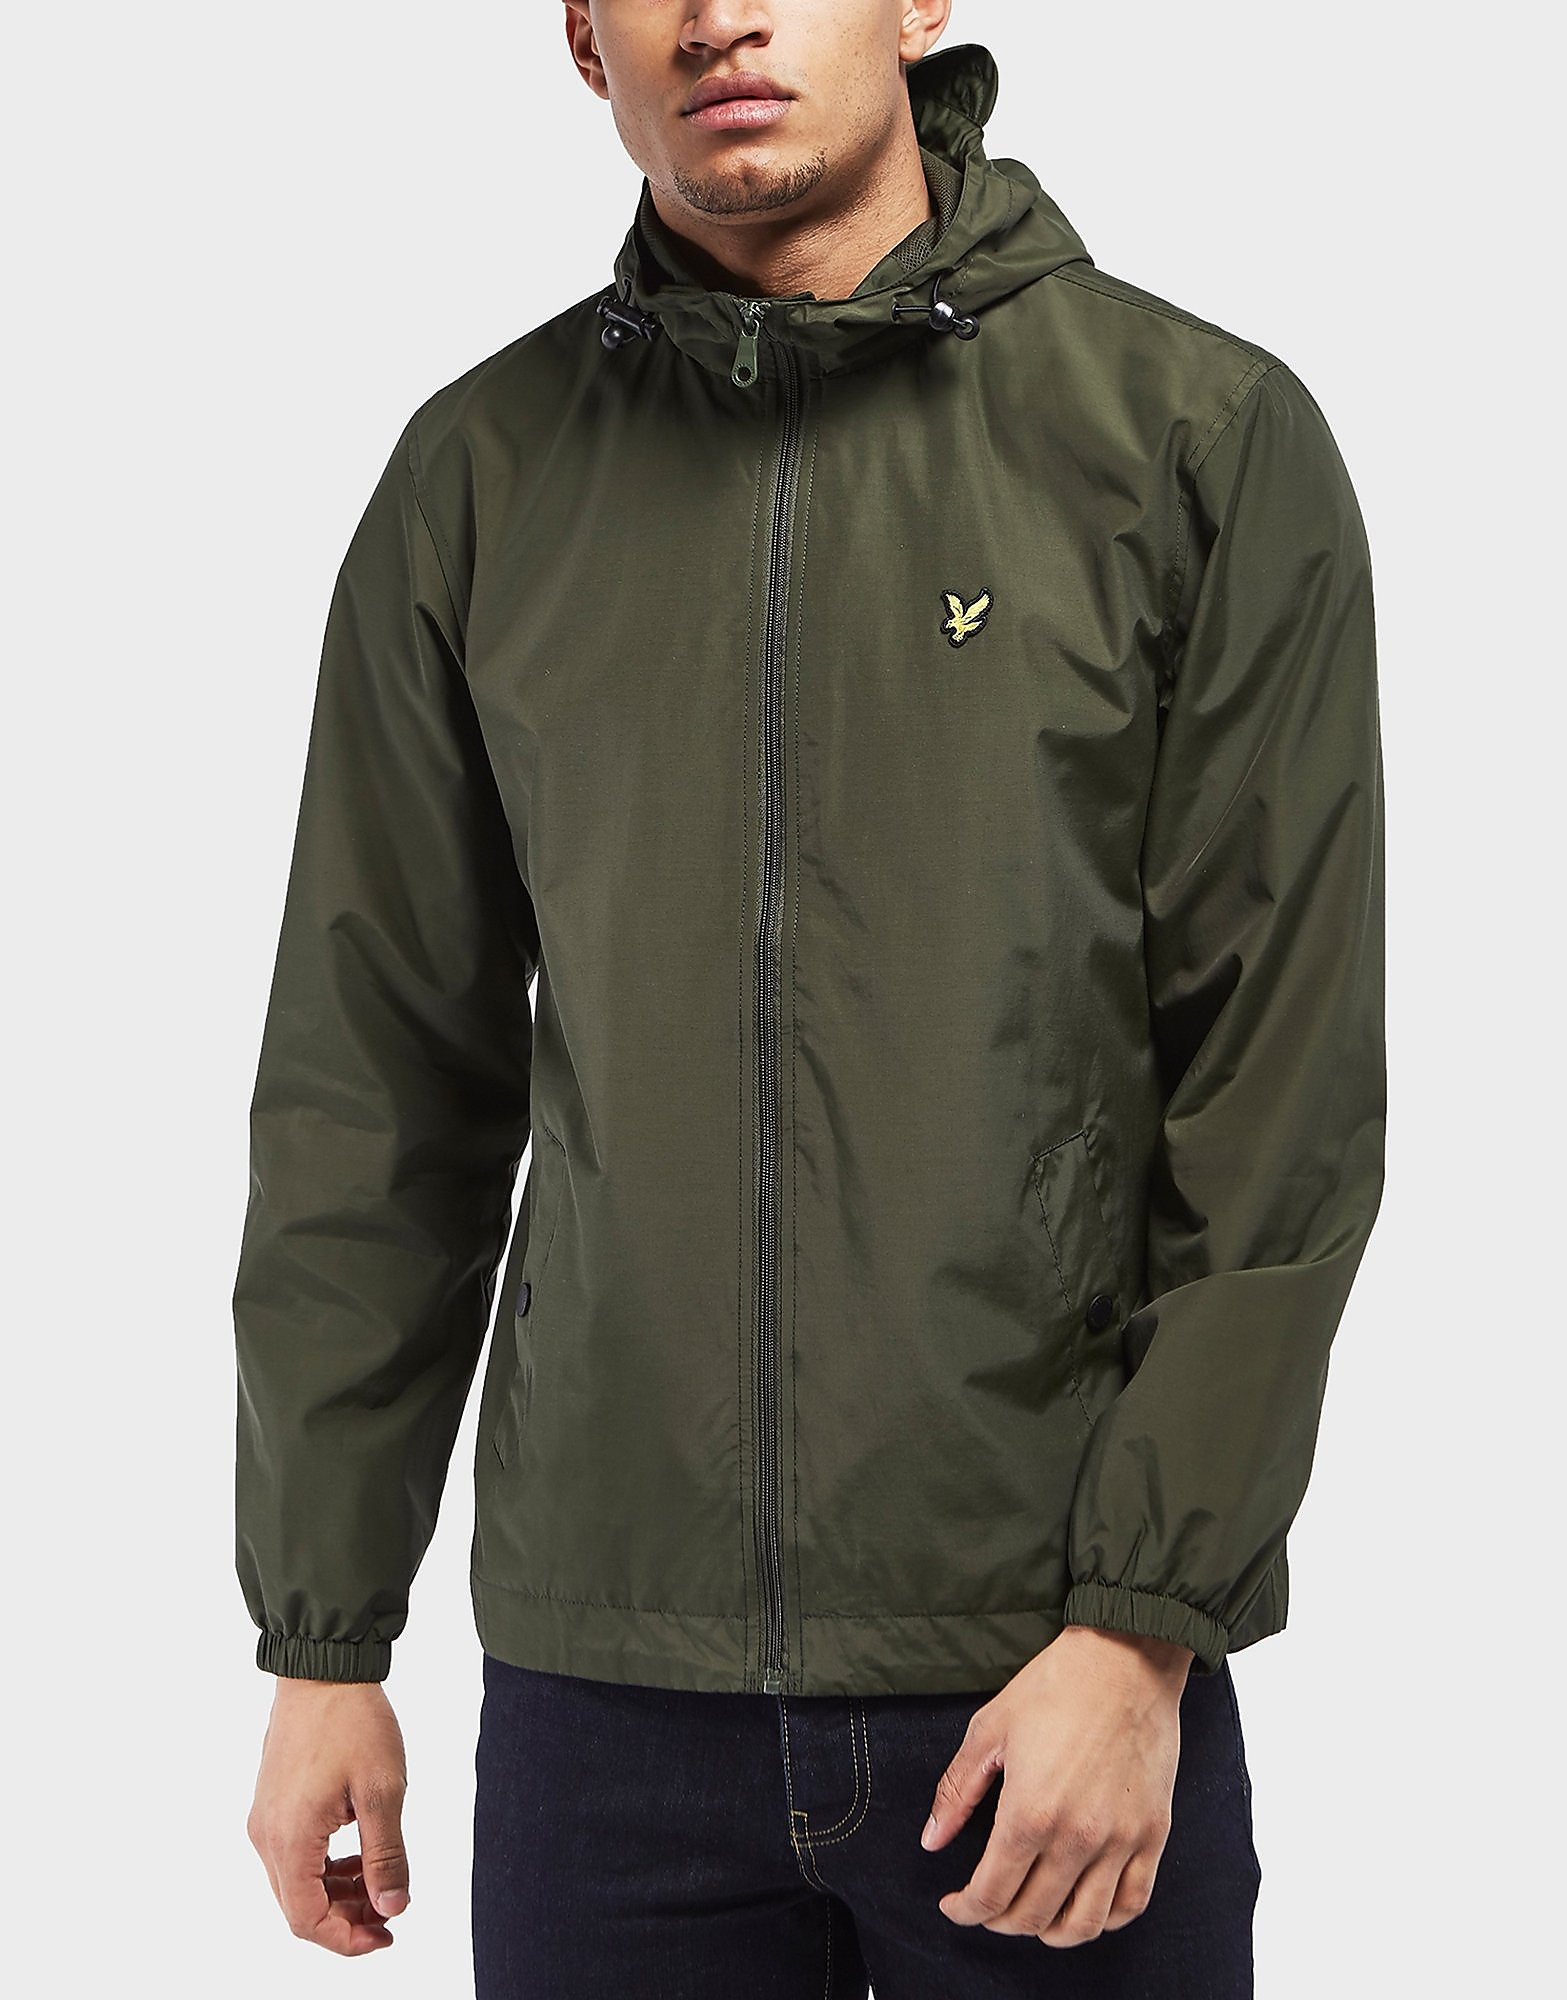 Lyle & Scott Full-Zip Hooded Lightweight Jacket - Exclusive